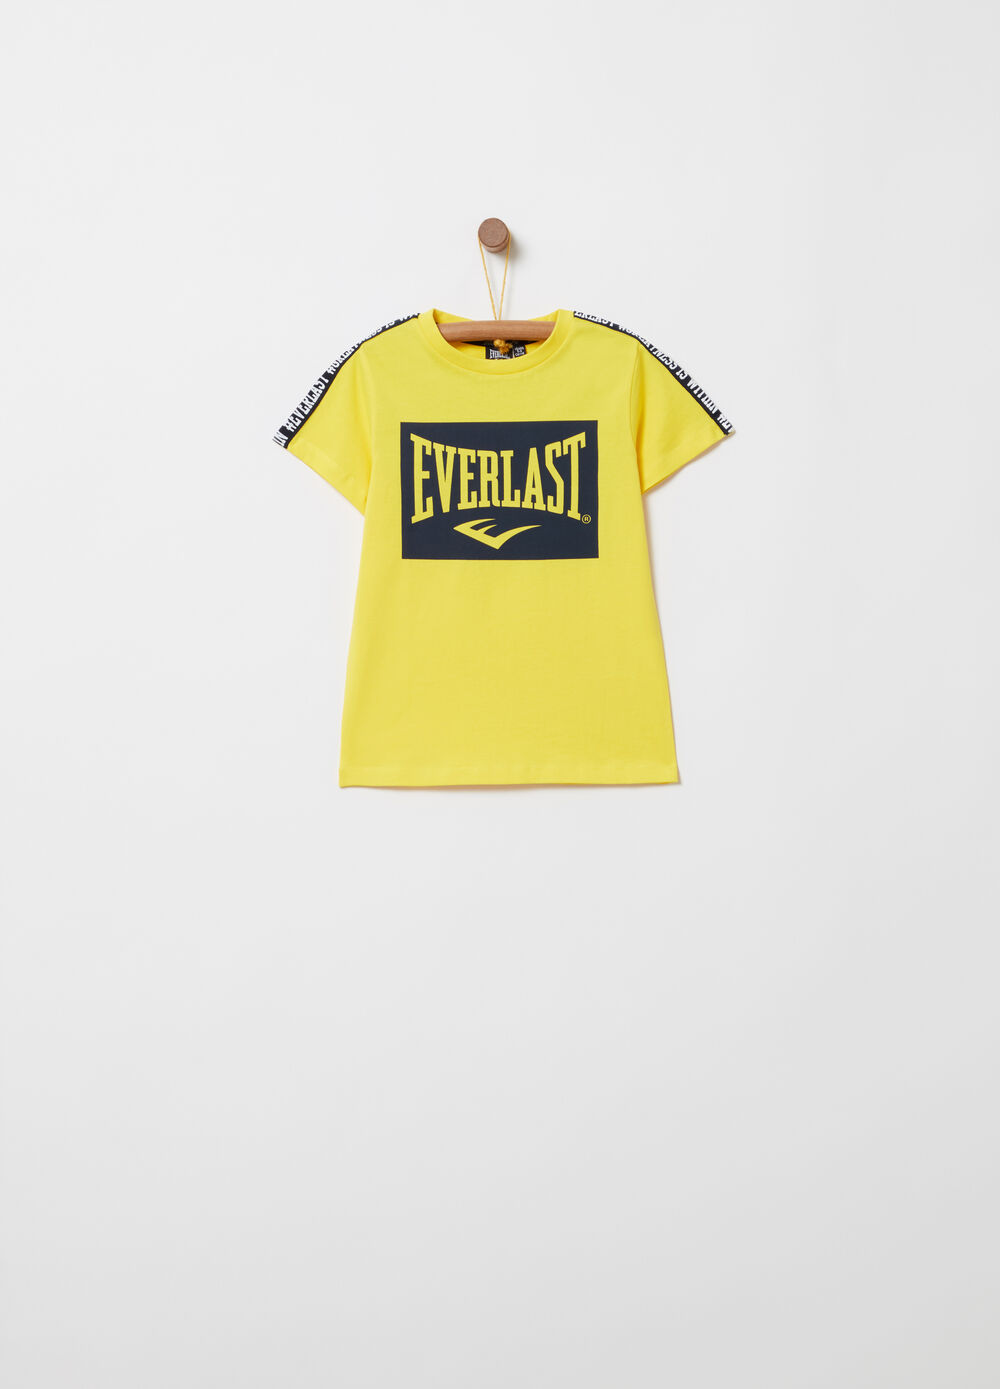 Everlast T-shirt with decorative motifs